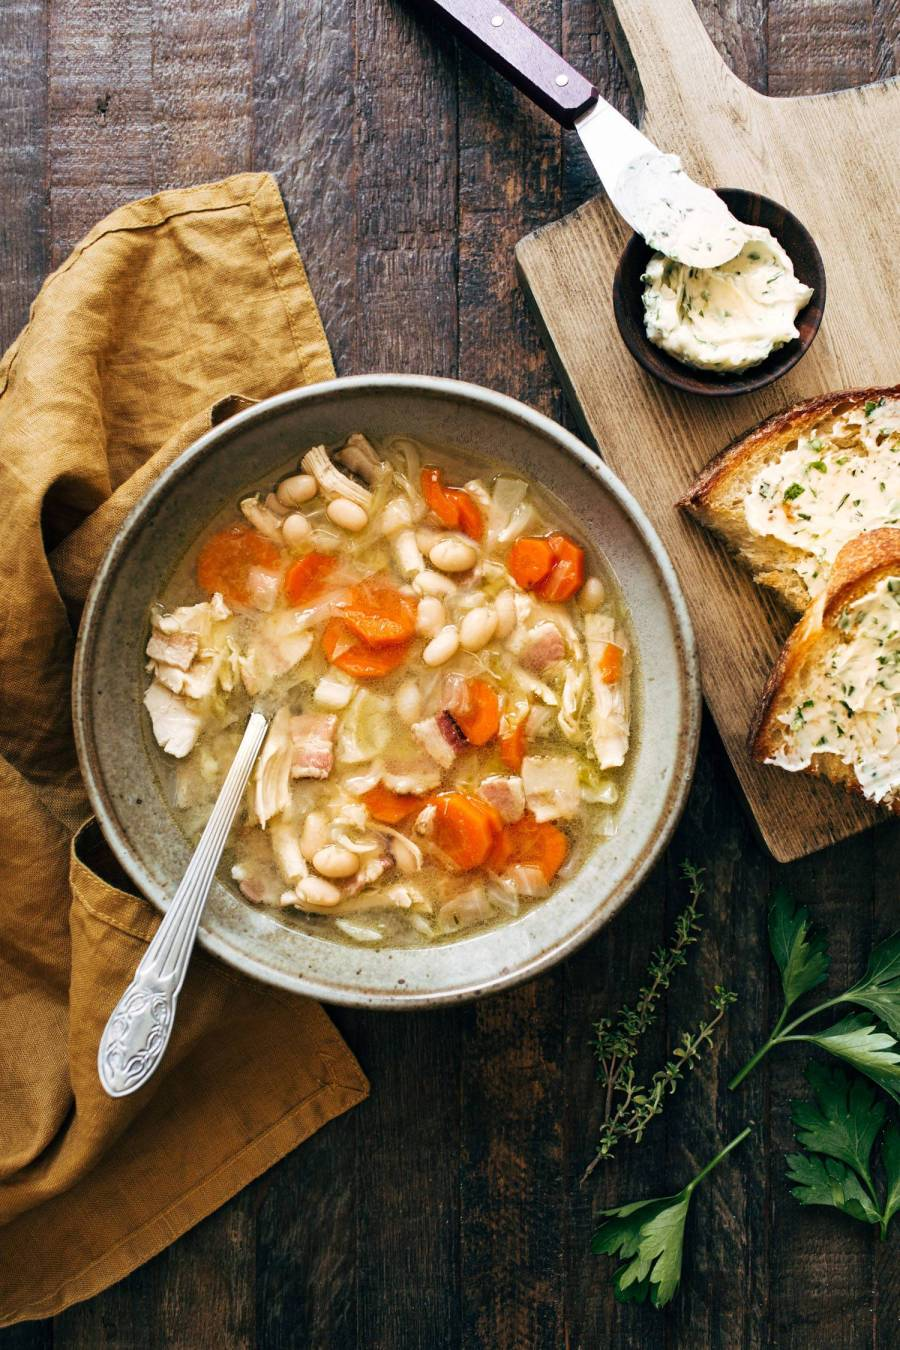 Chicken stew in a bowl with a spoon and bread on the side.